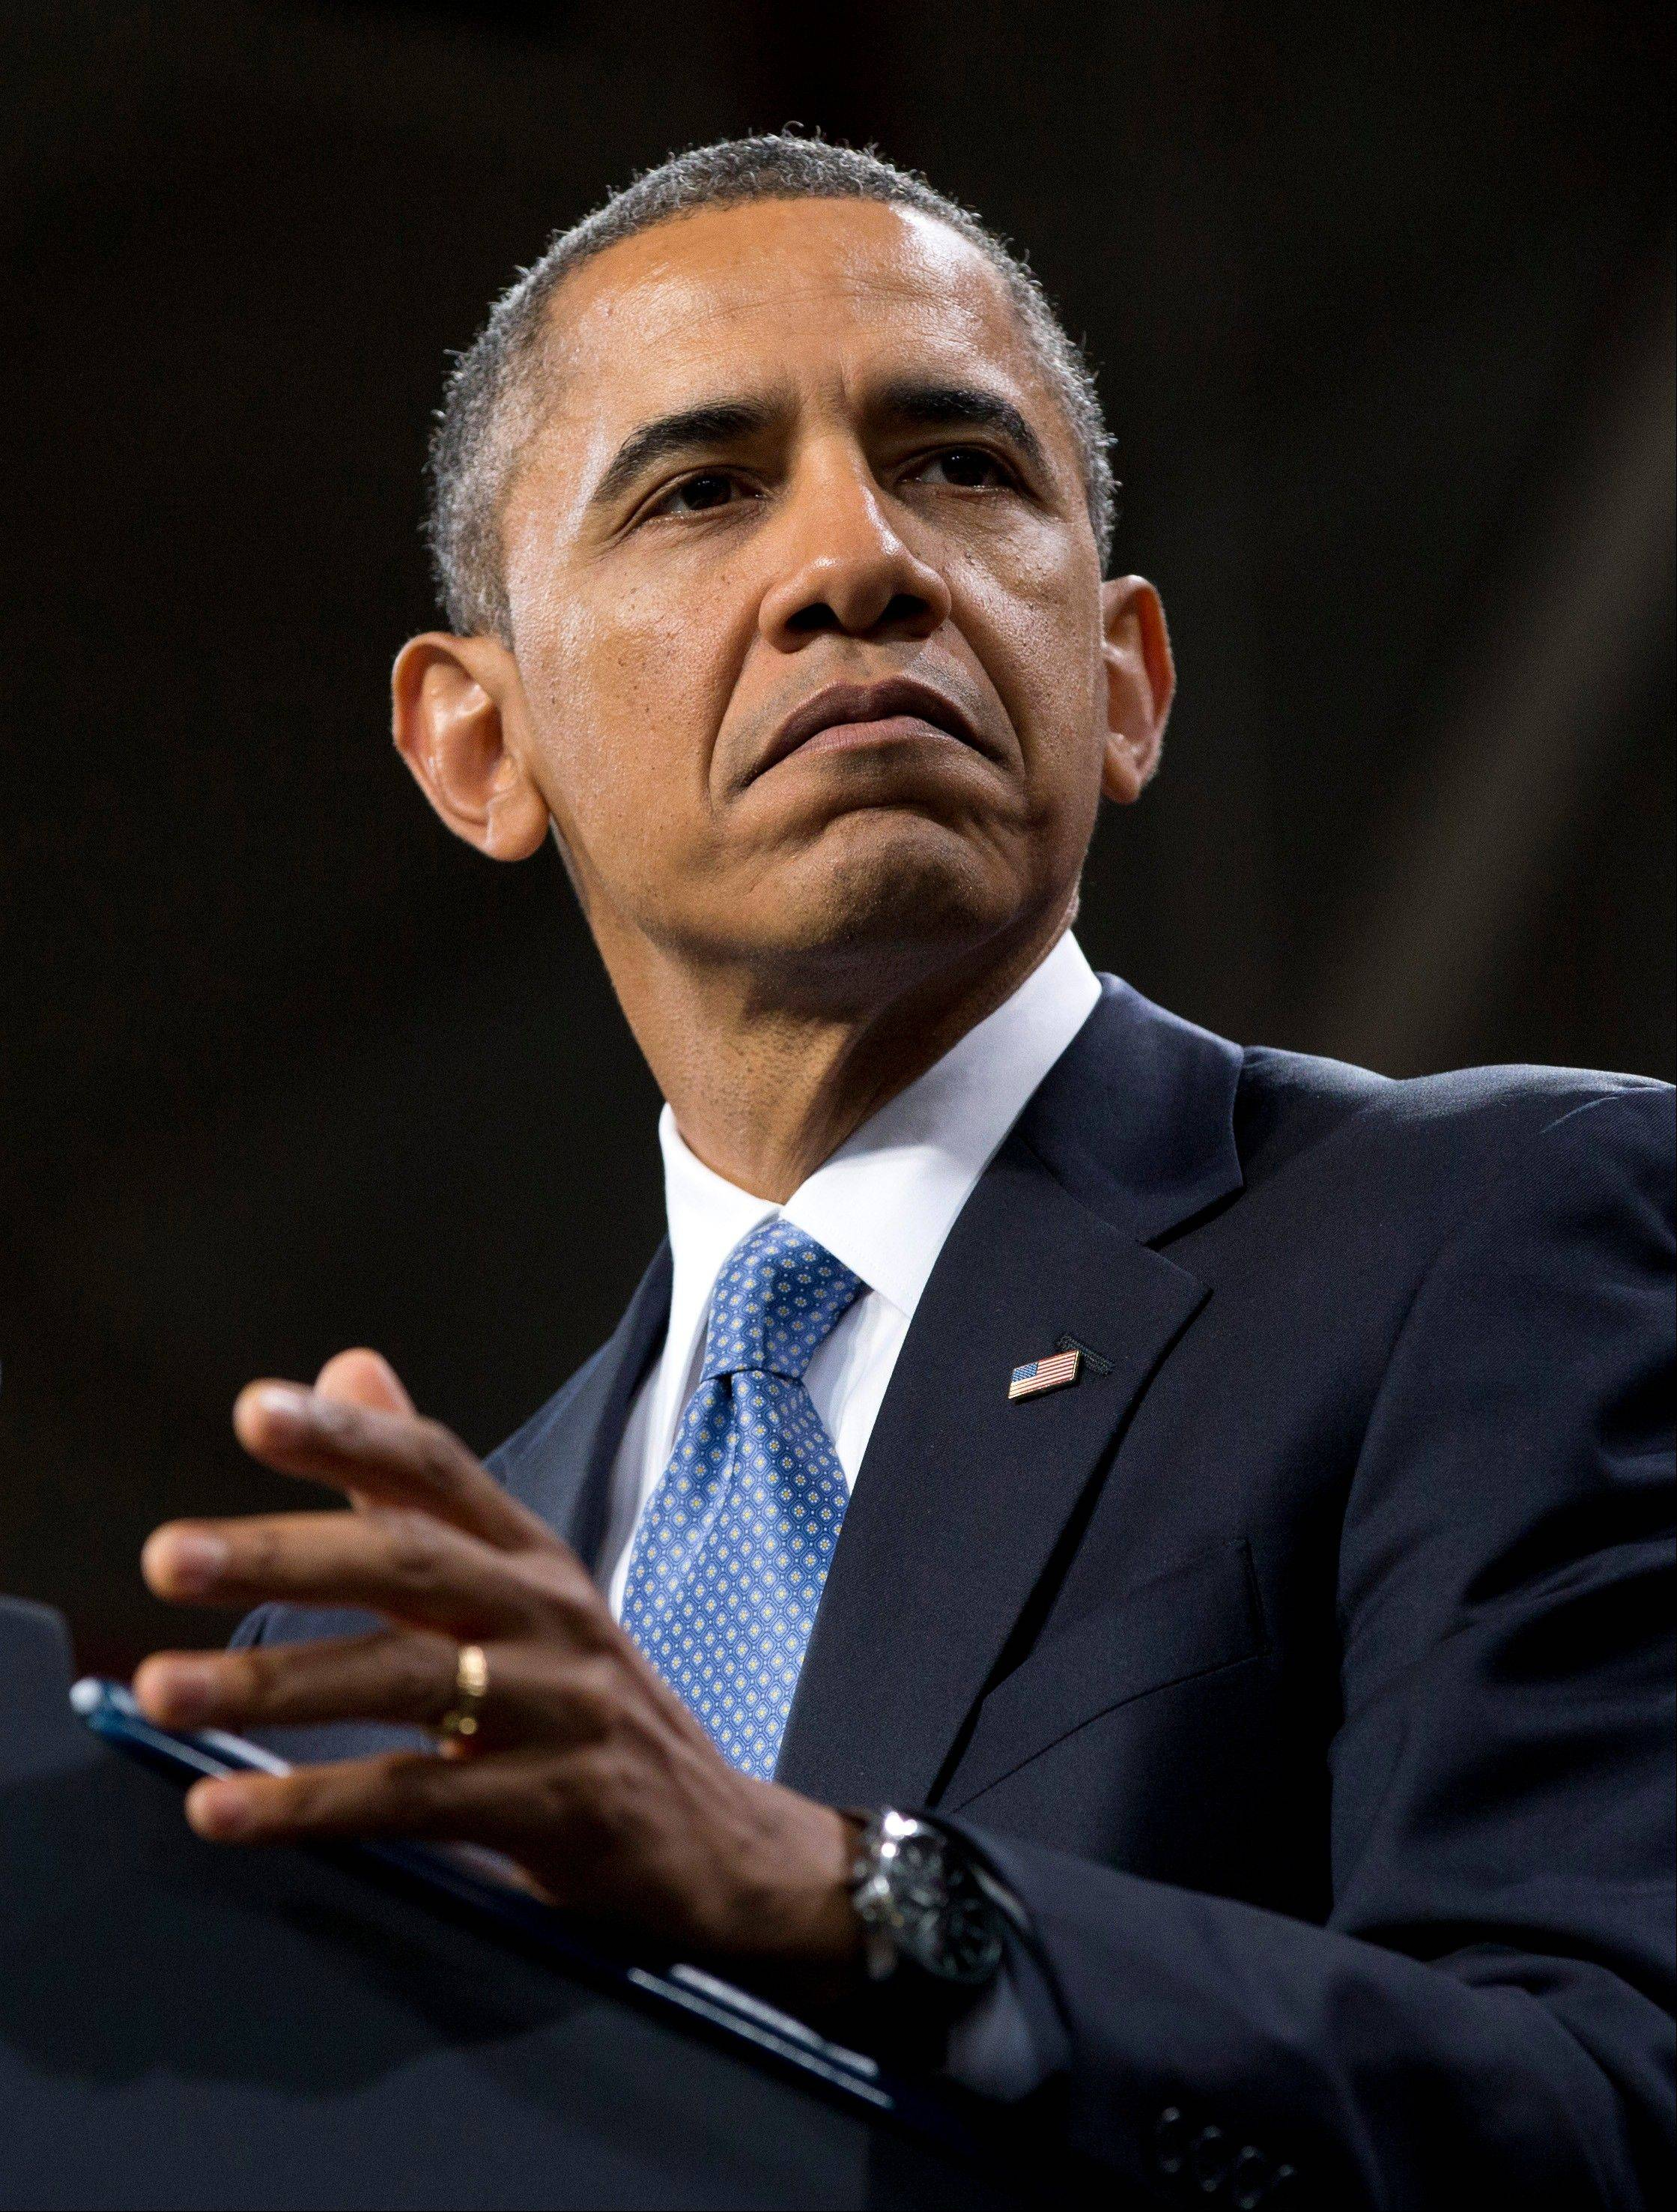 President Barack Obama said Sunday that gays should be allowed in the Boy Scouts and women should be allowed in military combat roles, weighing in on two storied American institutions facing proposals to end long-held exclusions.